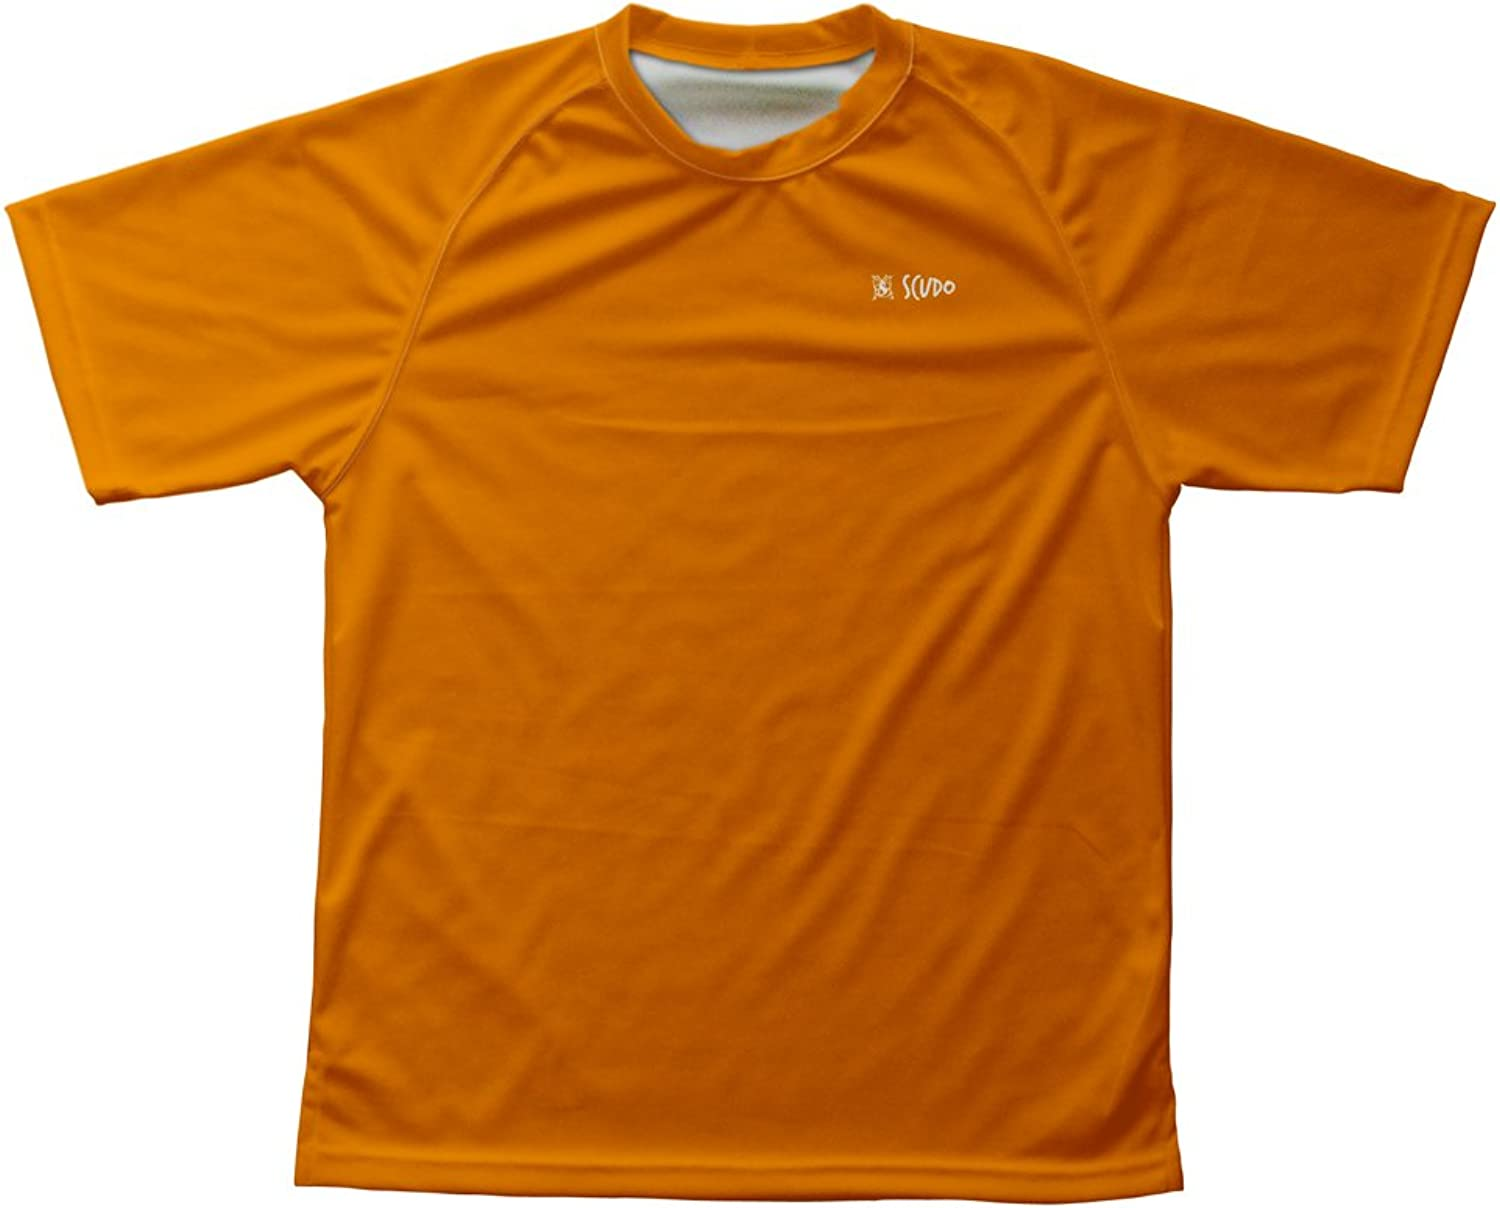 98351a88e4d3 orange Technical TShirt for Men and Women noxsol2368-Sporting goods ...